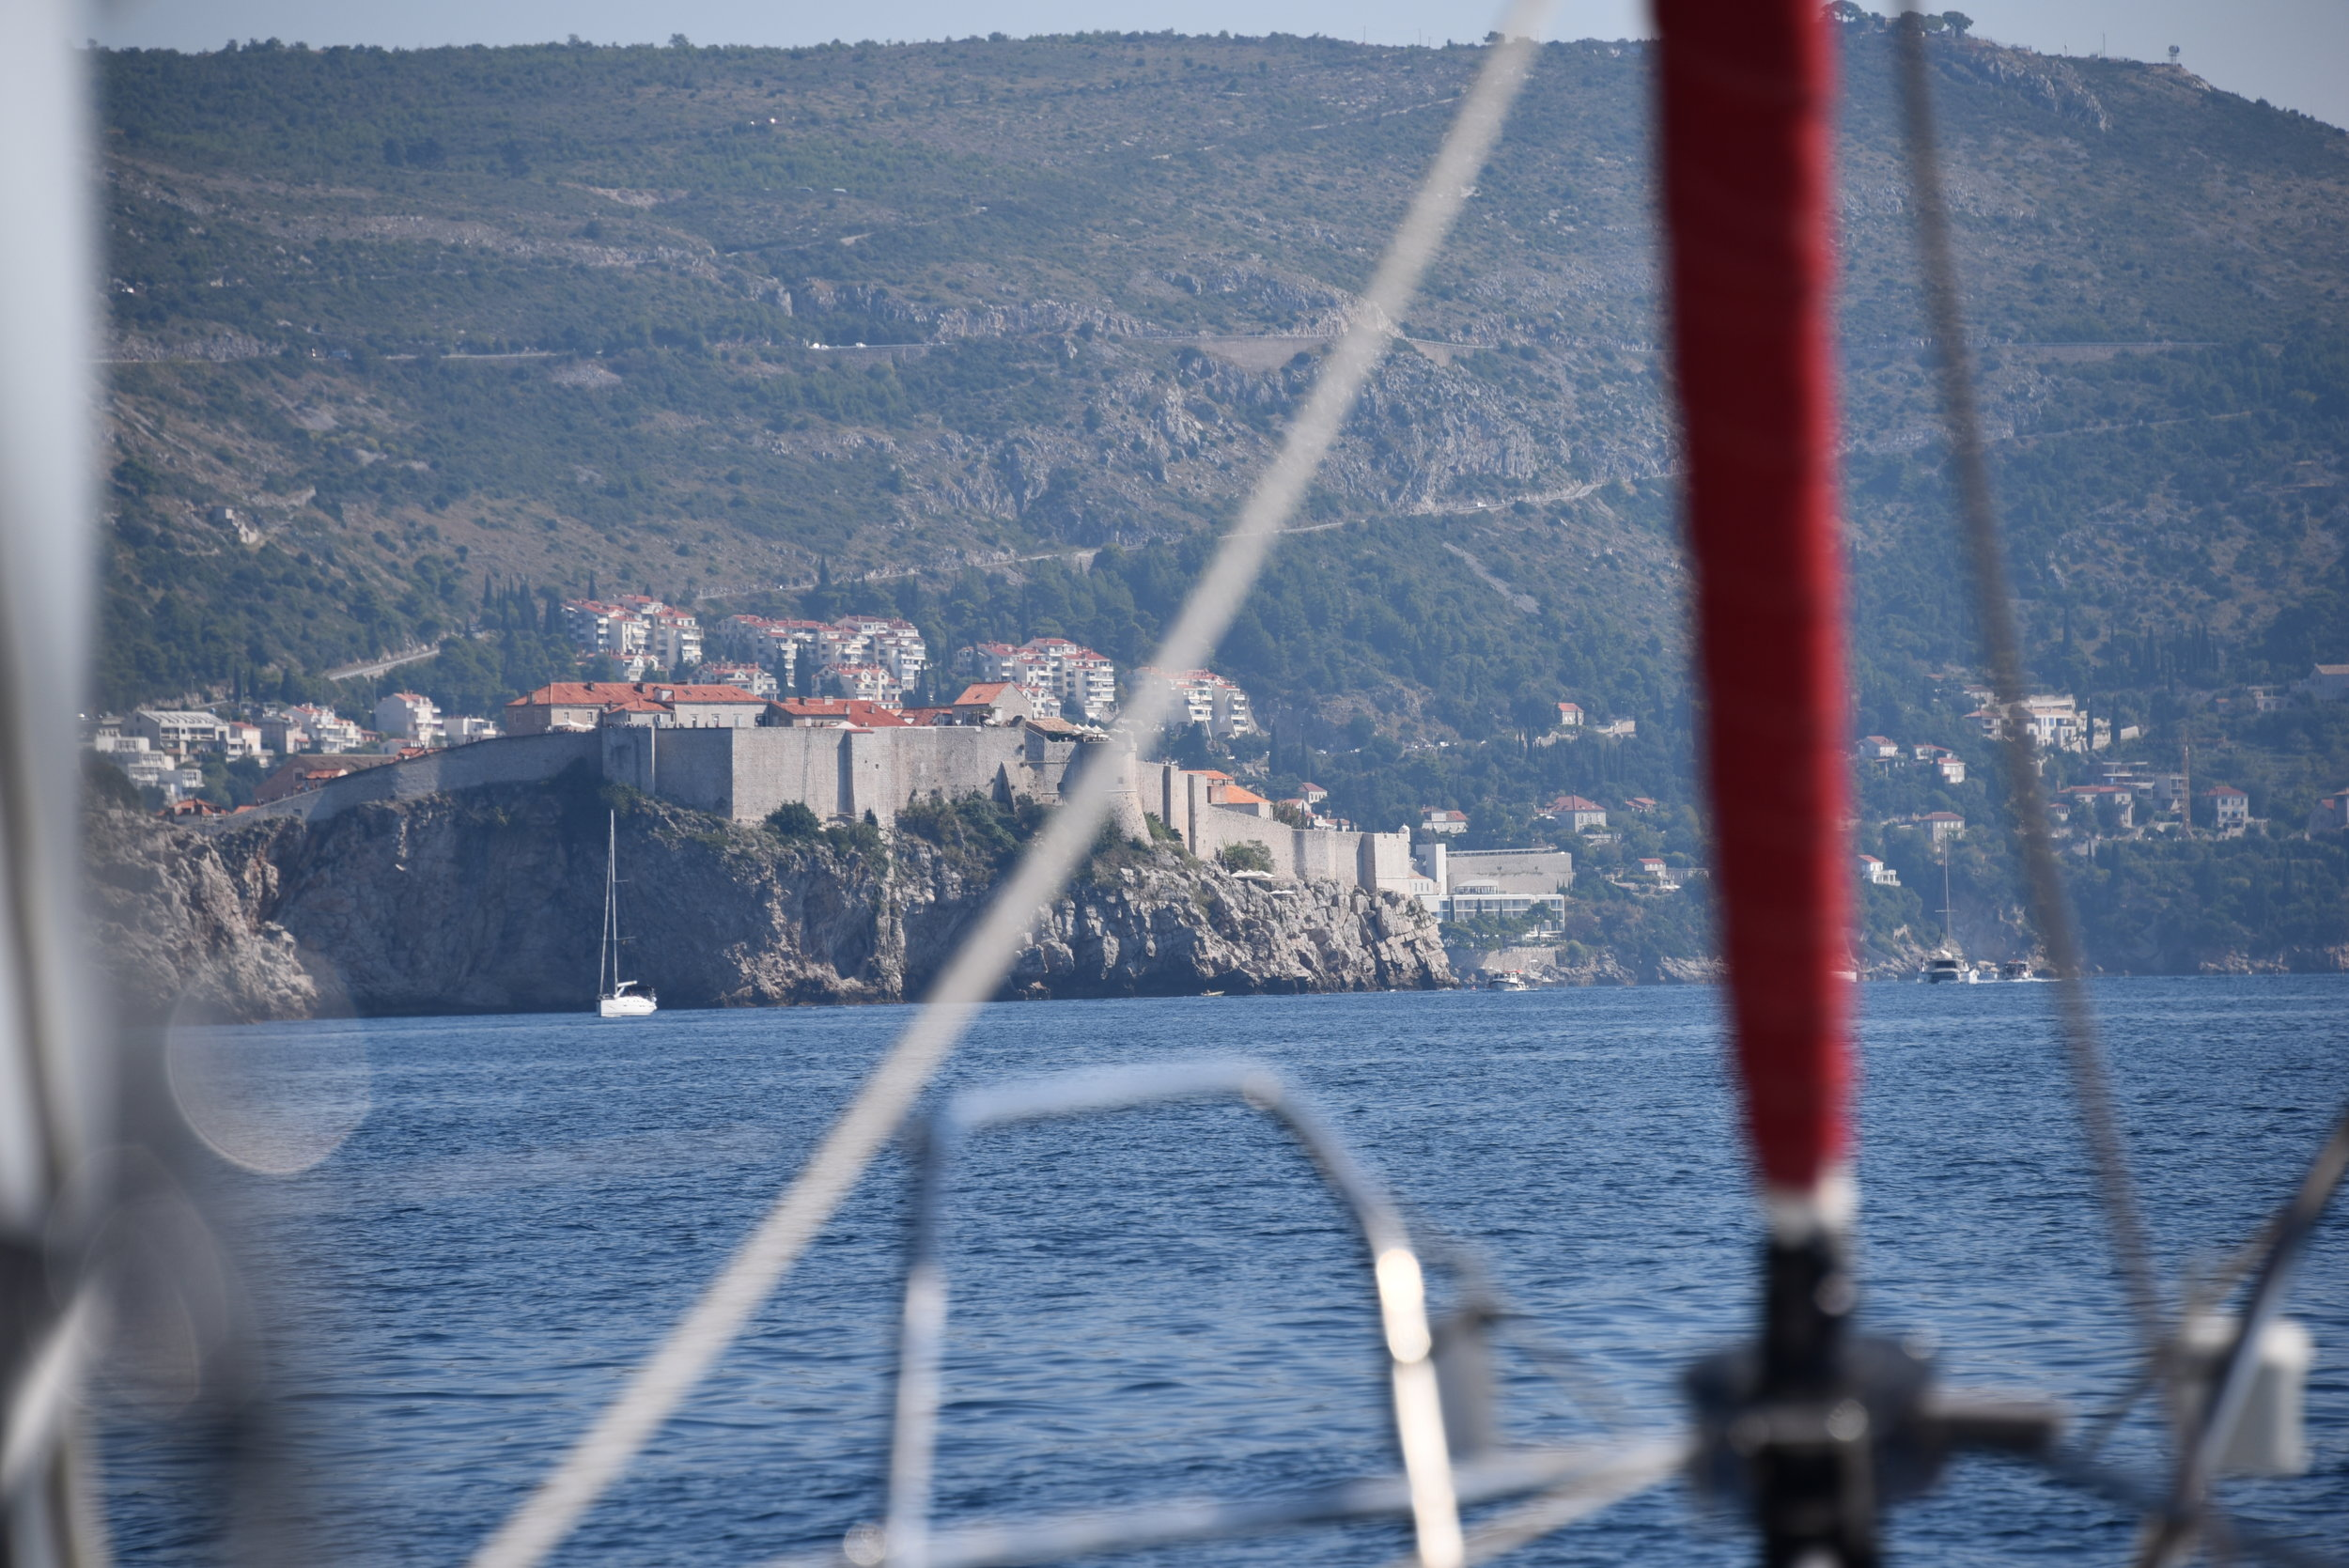 The approach to Old Town Dubrovnik. Magnificent!